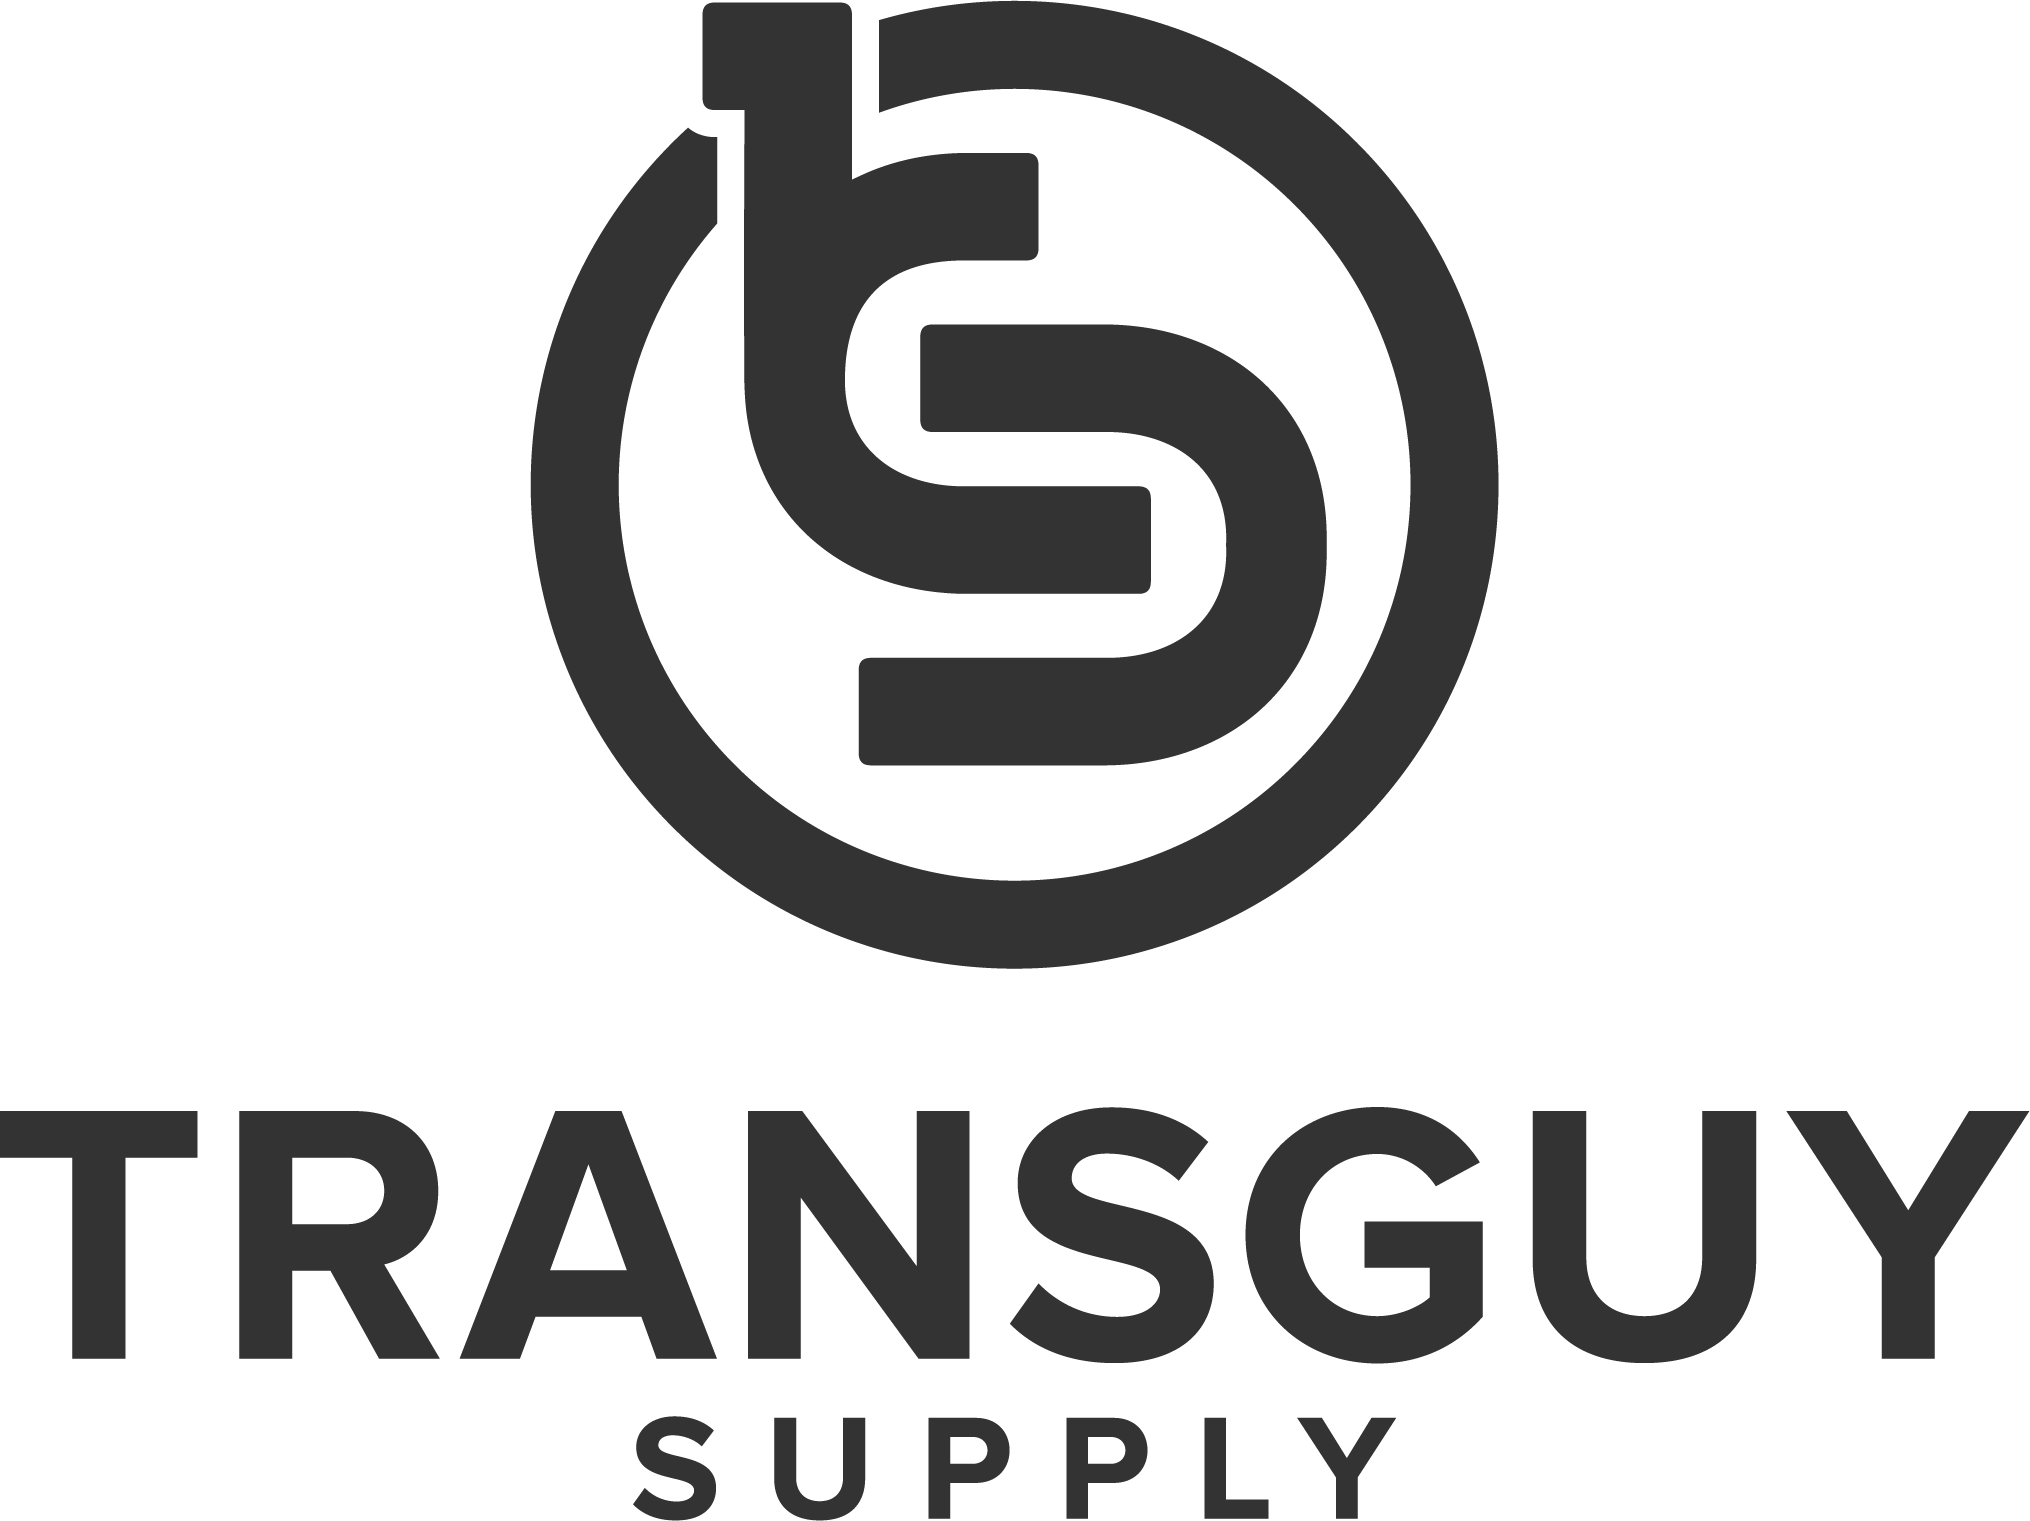 Transguy Supply